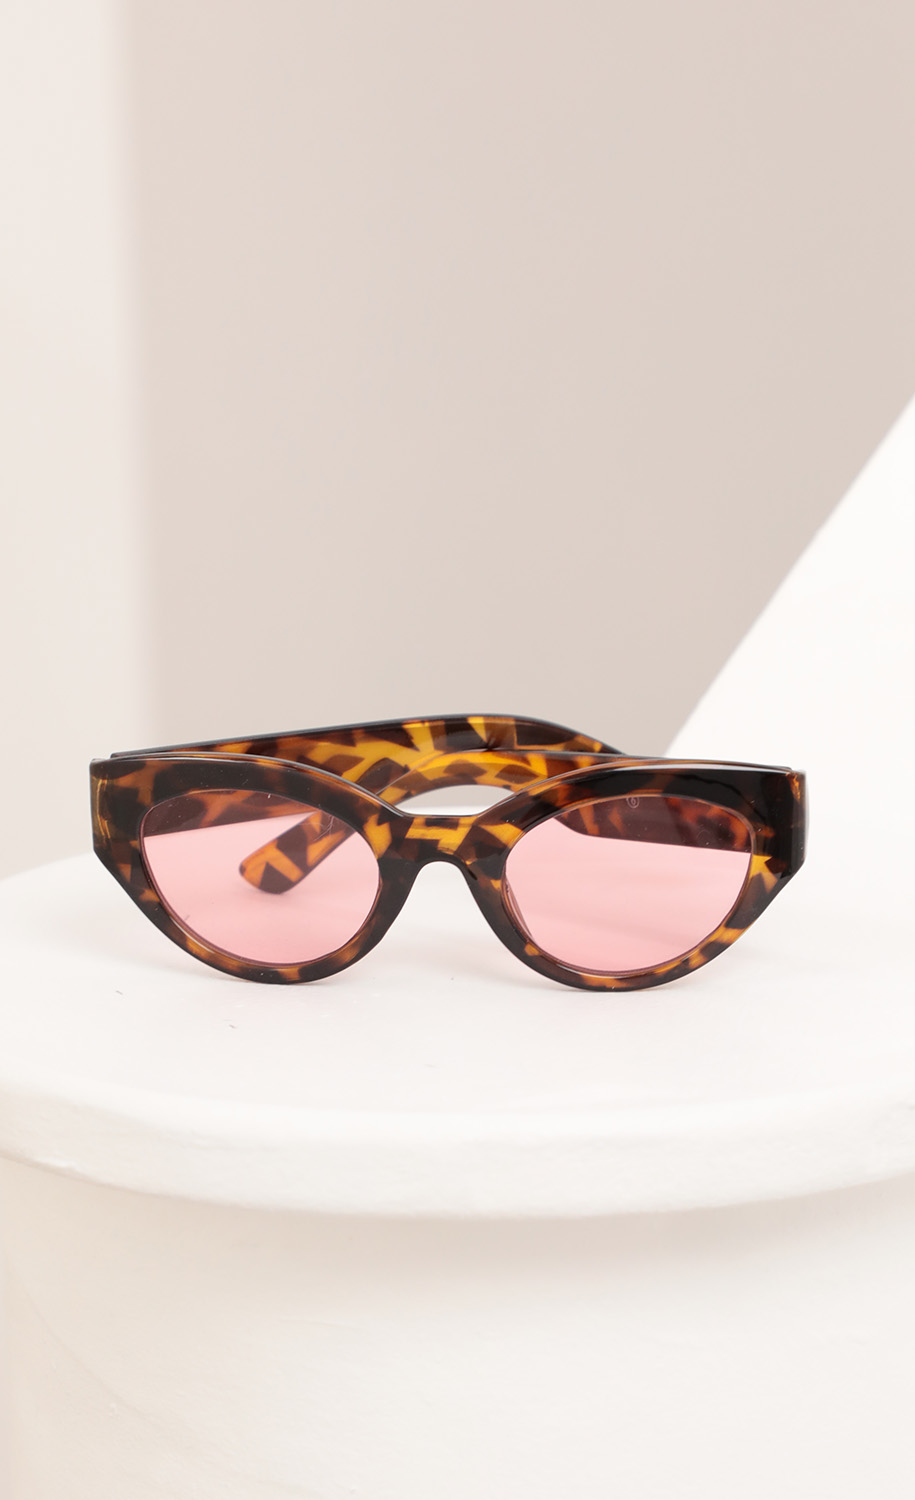 Jade Cateye Sunglasses in Tortoise and Pink